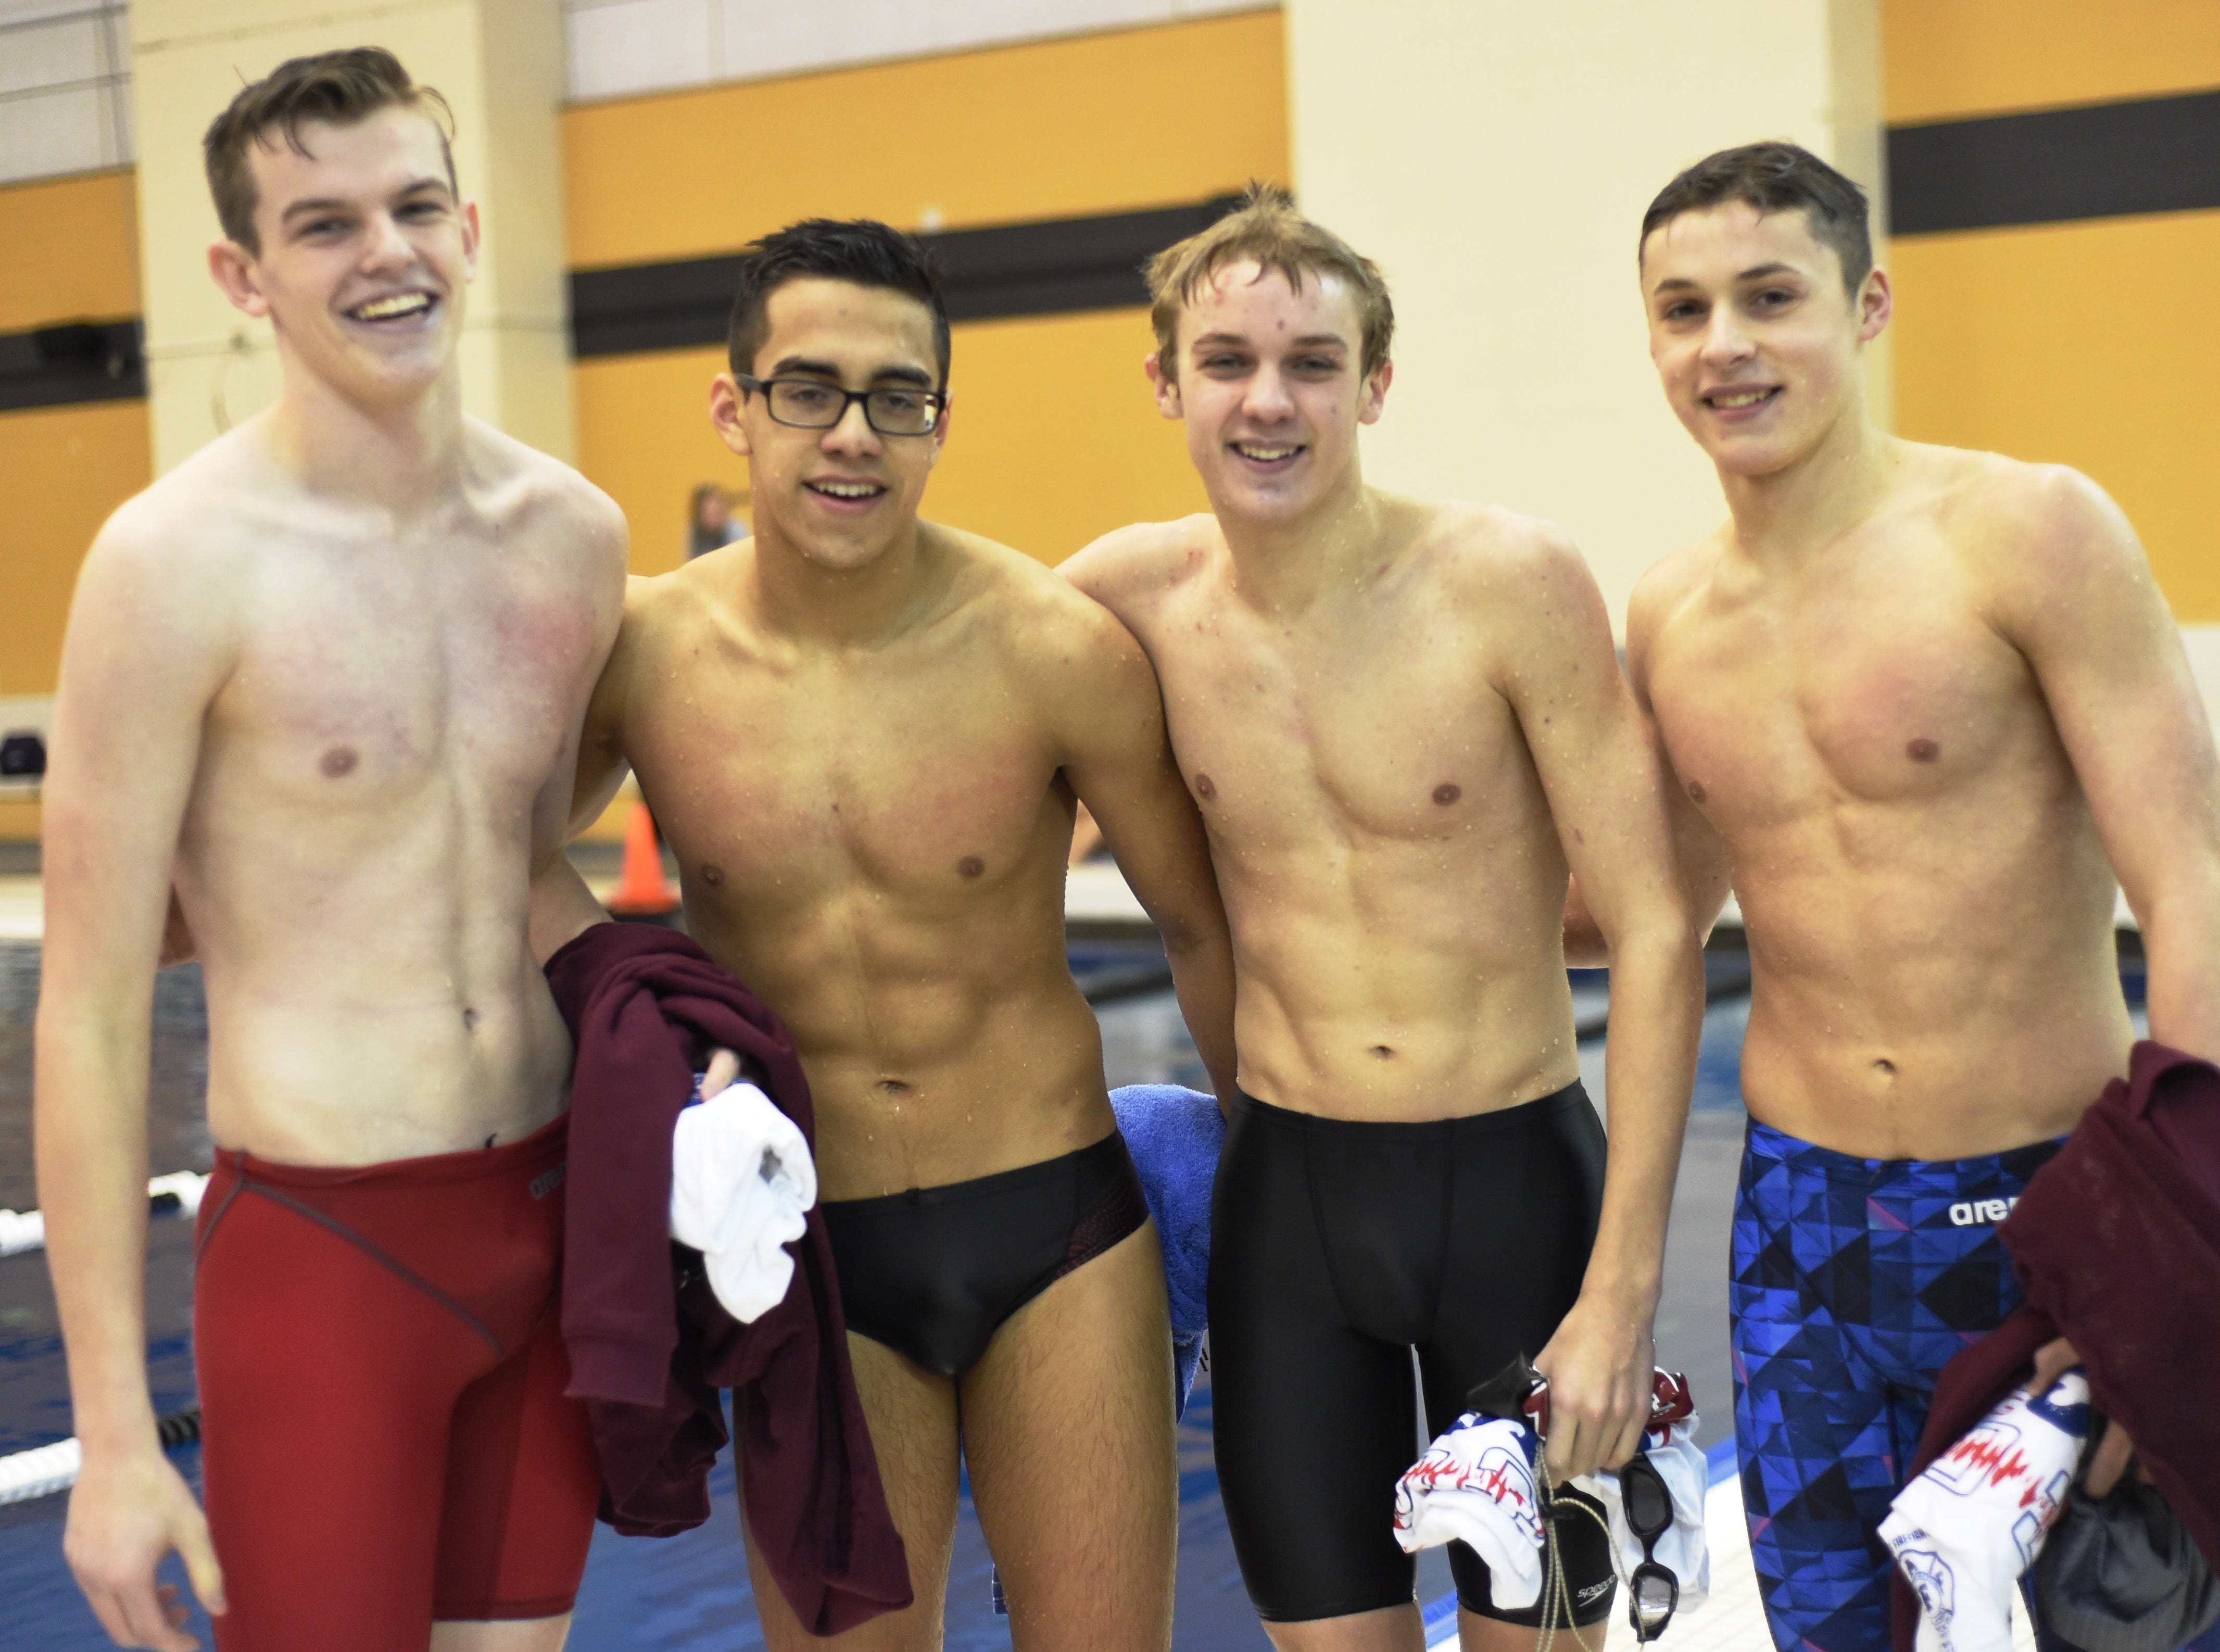 Images from Saturday's North Central Conference Swimming and Diving Championships at Purdue. Zach Weathers, Porfi Vasquez, Chase Merrell and Jonah McCutcheon.